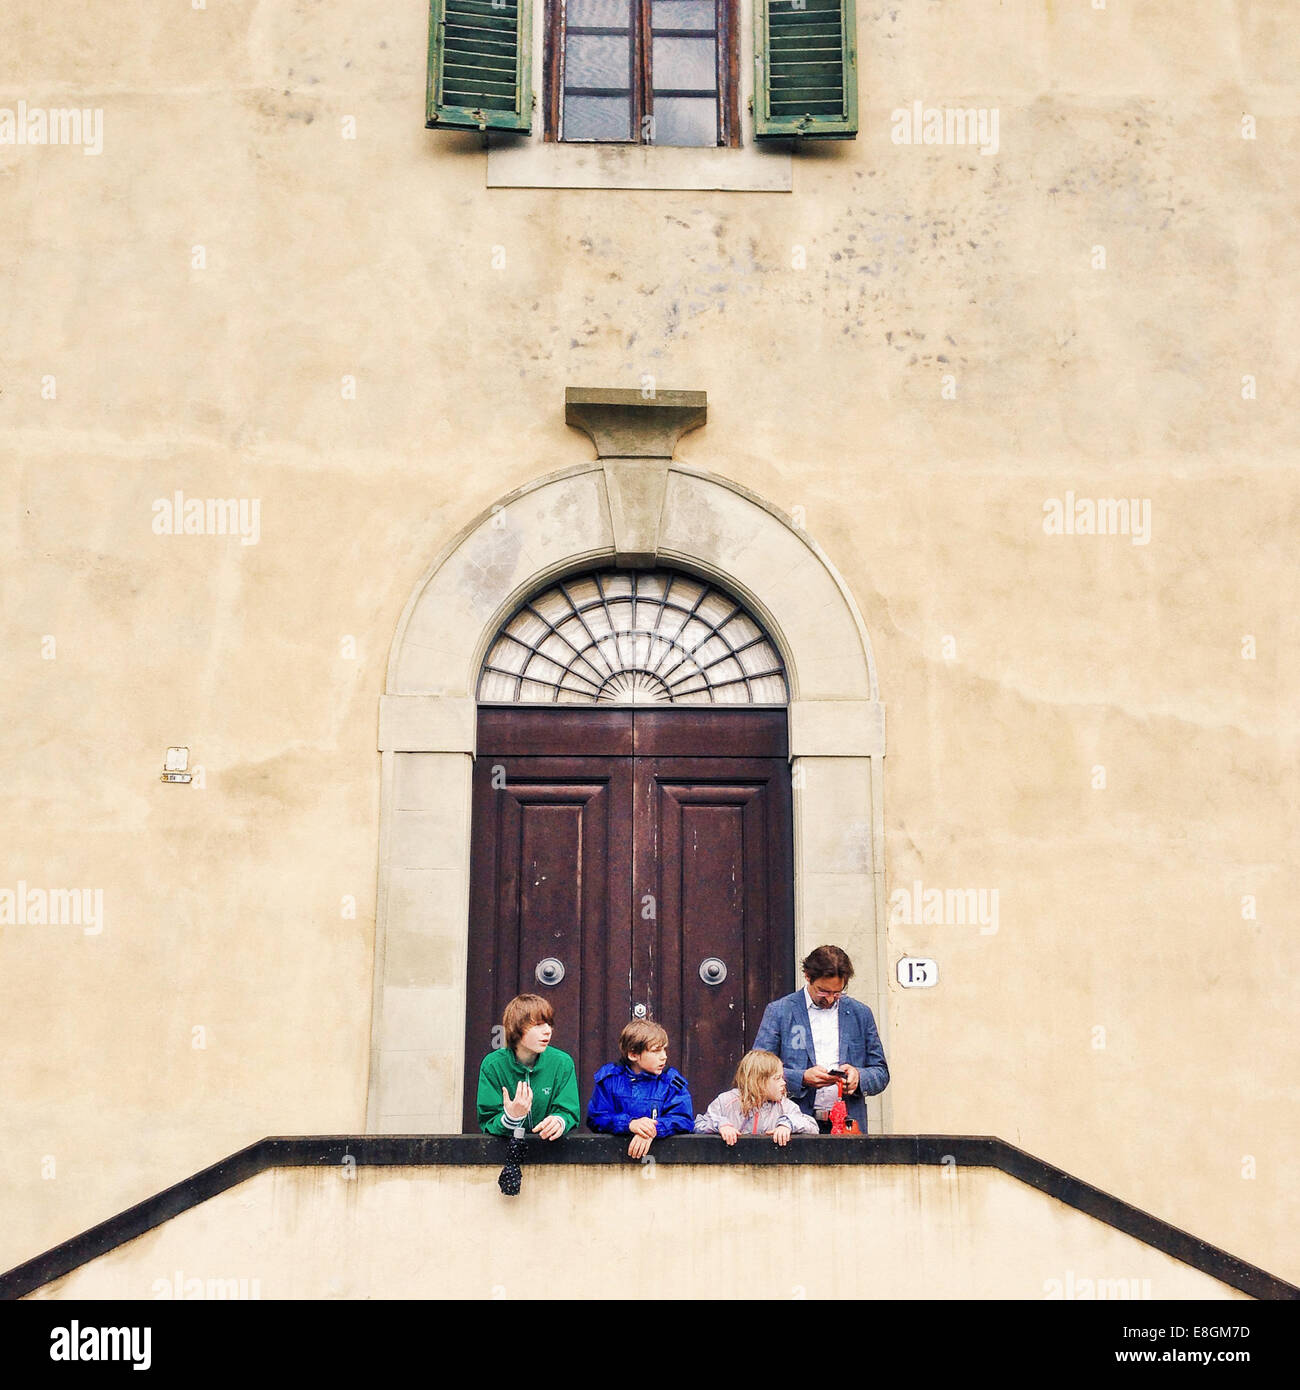 Father and three children standing in front of a building, Florence, Tuscany, Italy Stock Photo